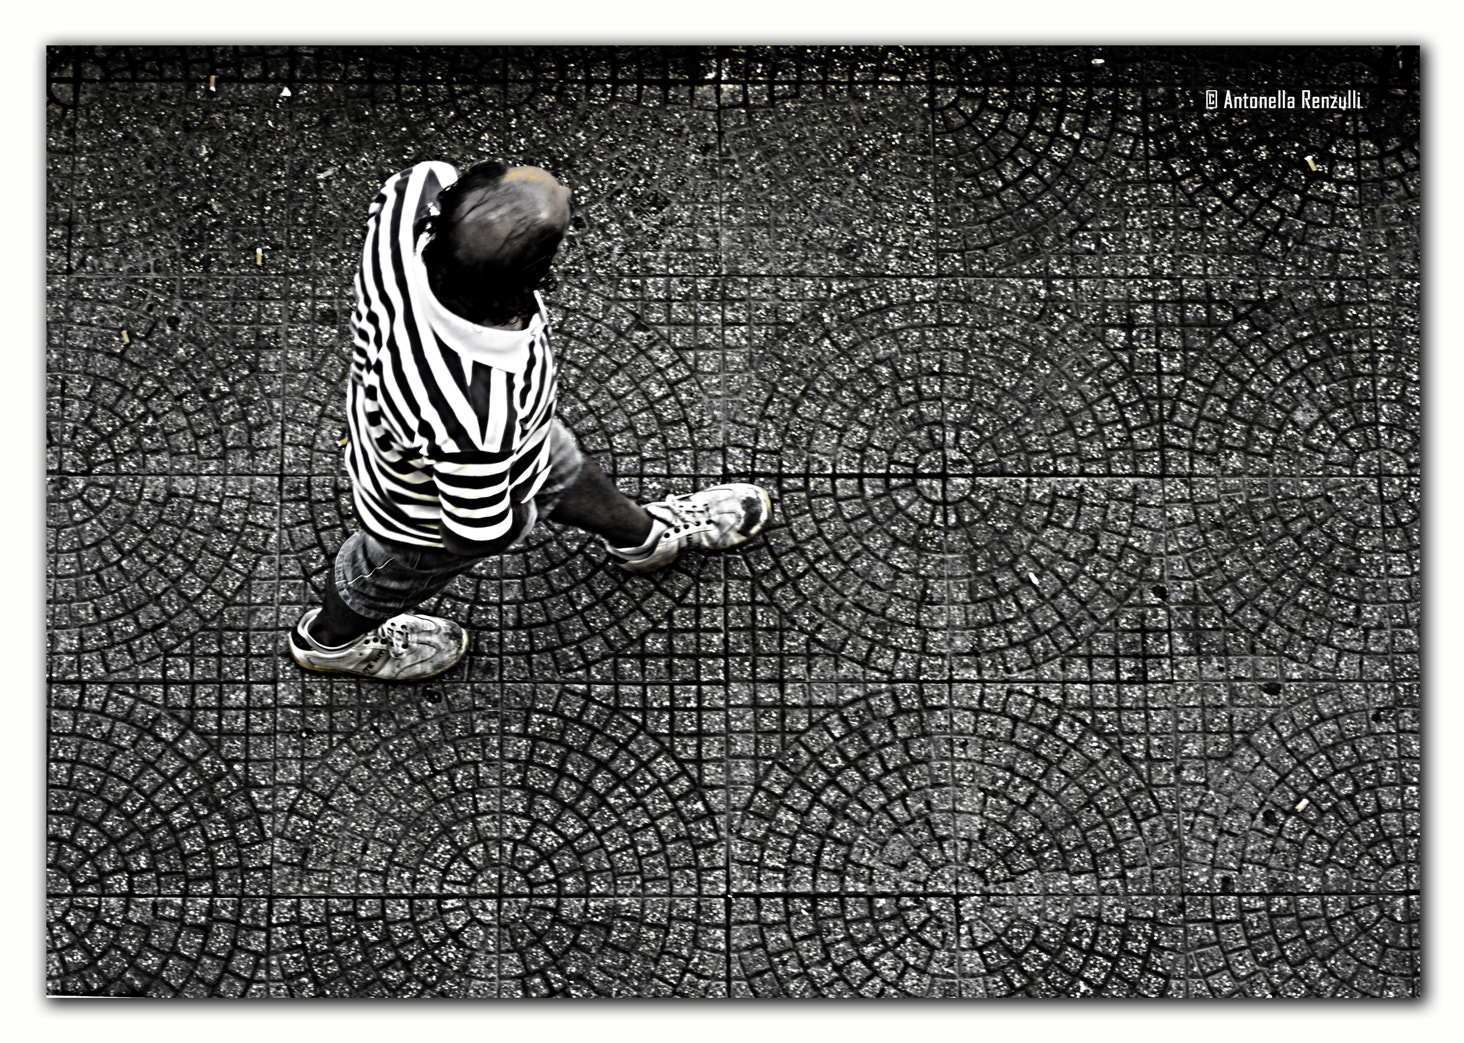 Photograph Walking on circles by Antonella Renzulli on 500px